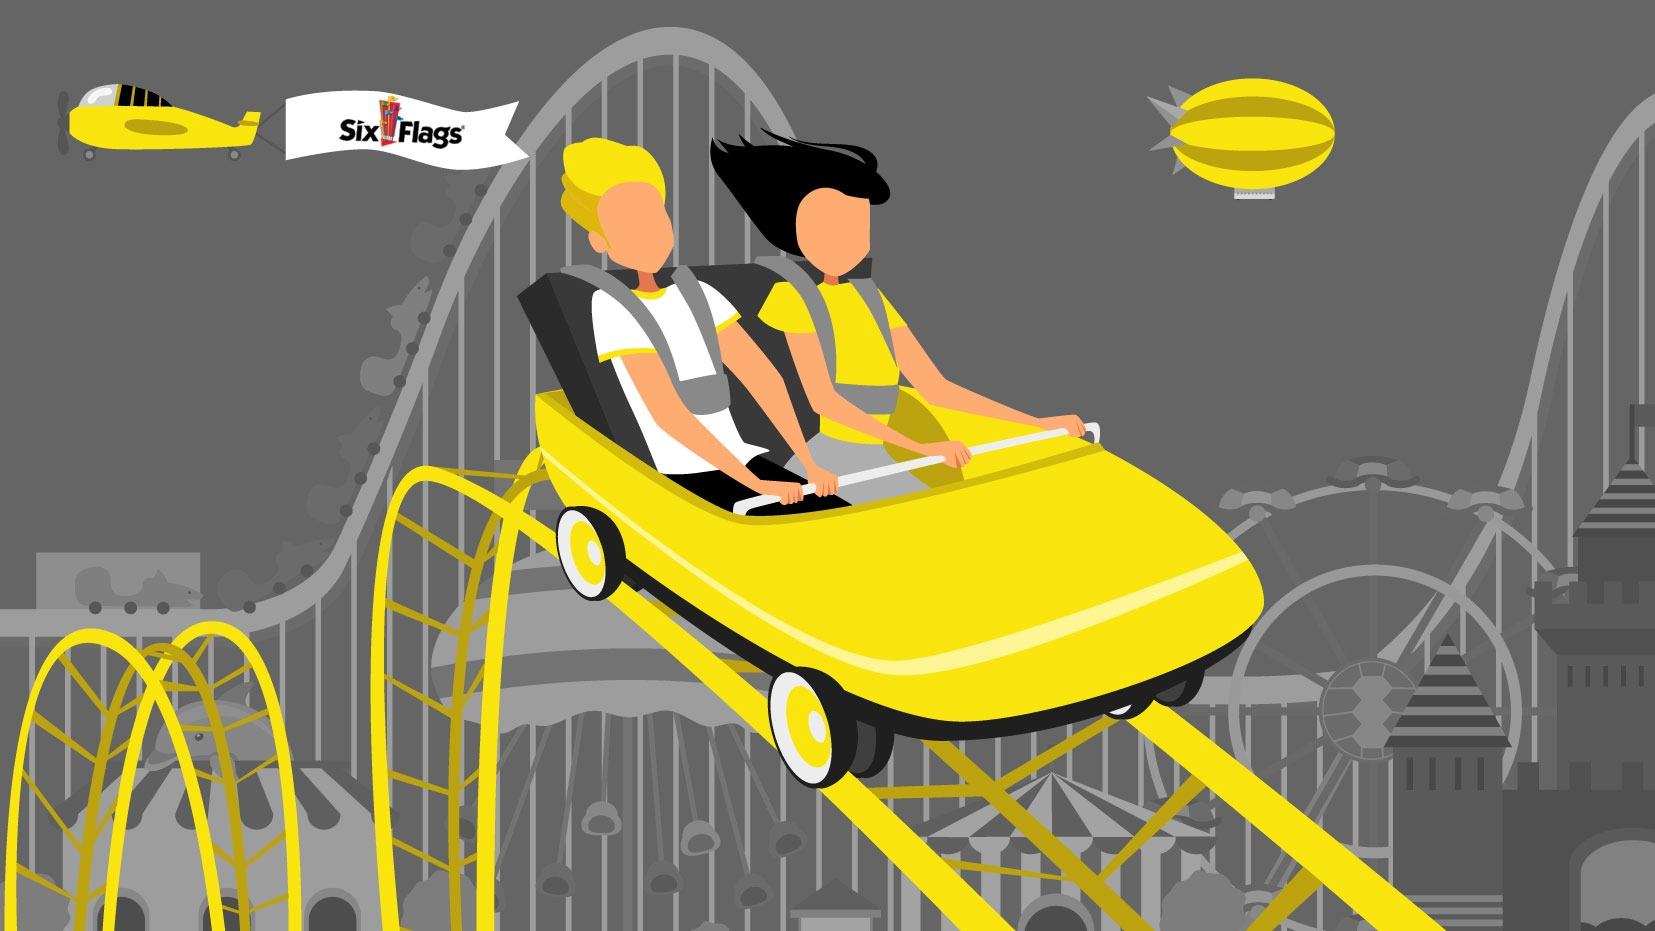 UV Launches Six Flags Great Adventure